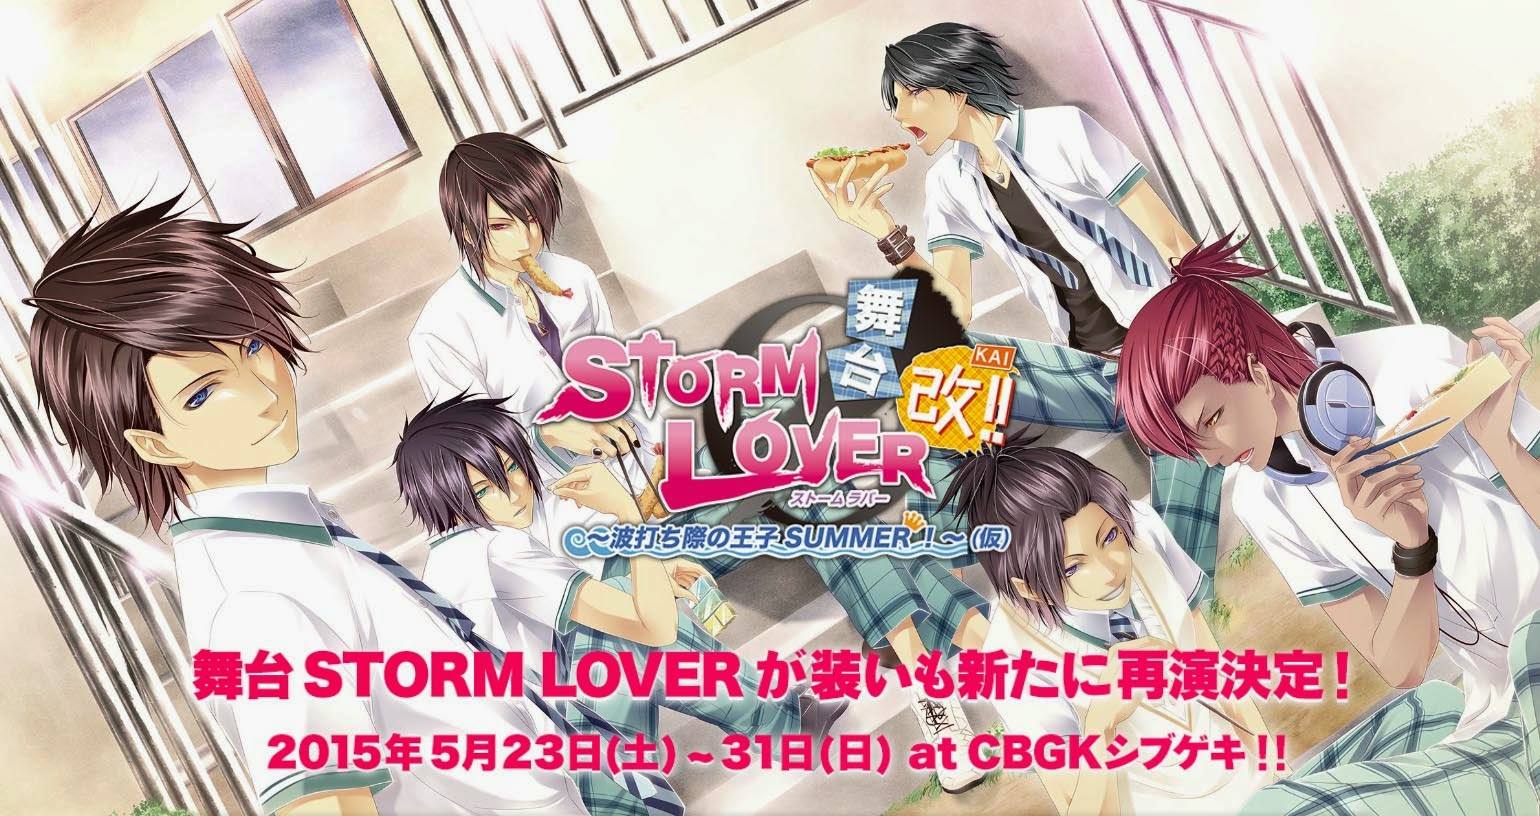 http://www.d3p.co.jp/stormlover/stage/